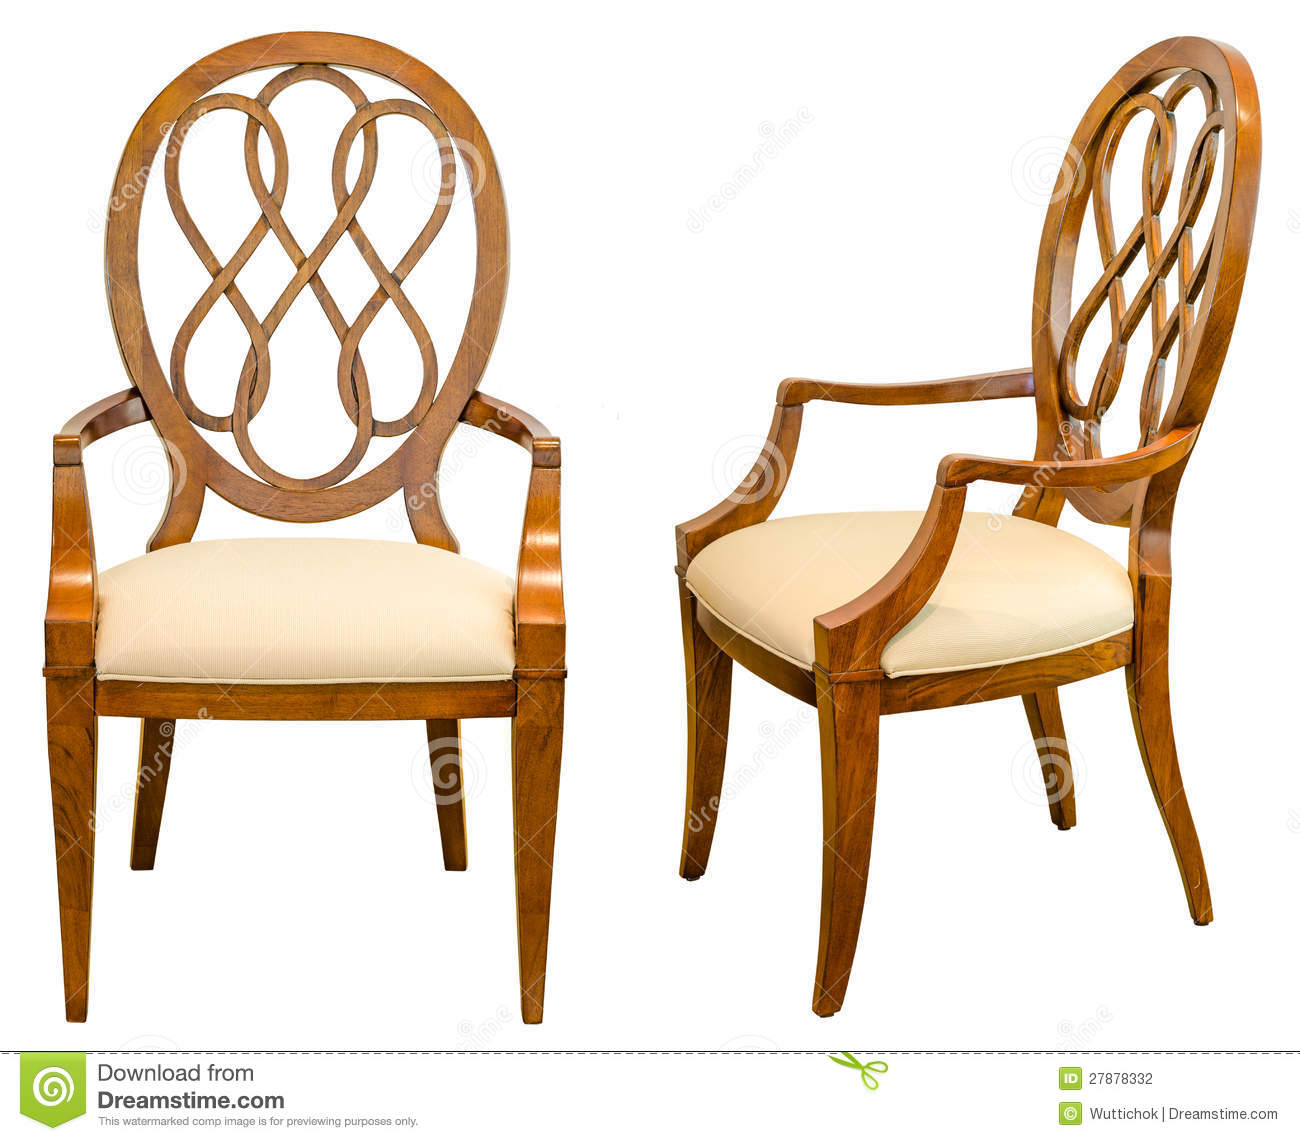 Modern Style Wooden Chair Stock Photography - Image: 27878332